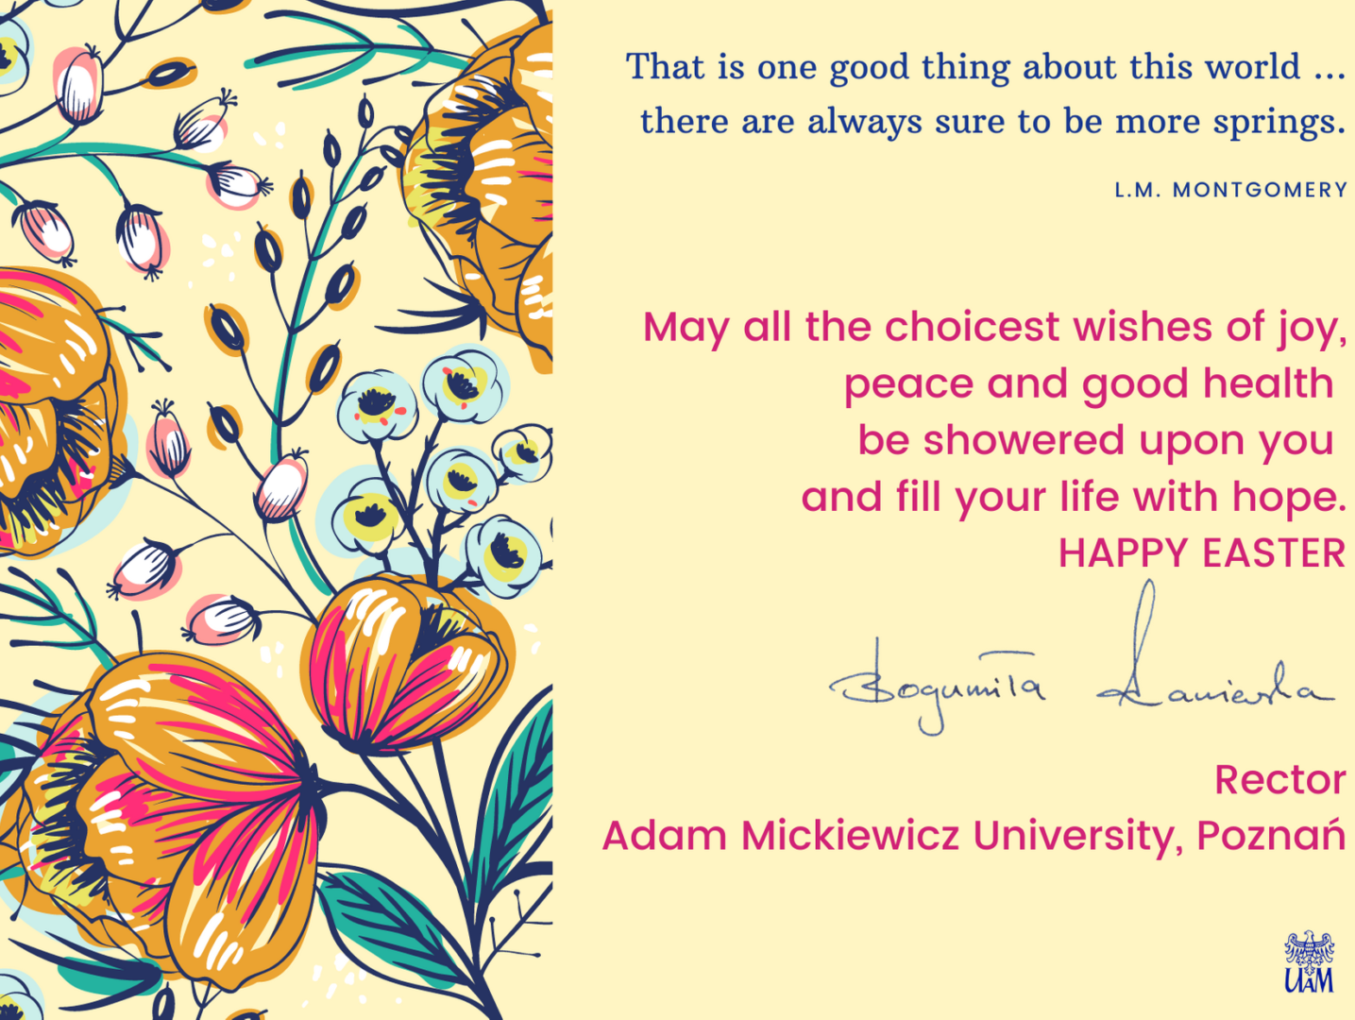 Easter Holiday Wishes from AMU Rector